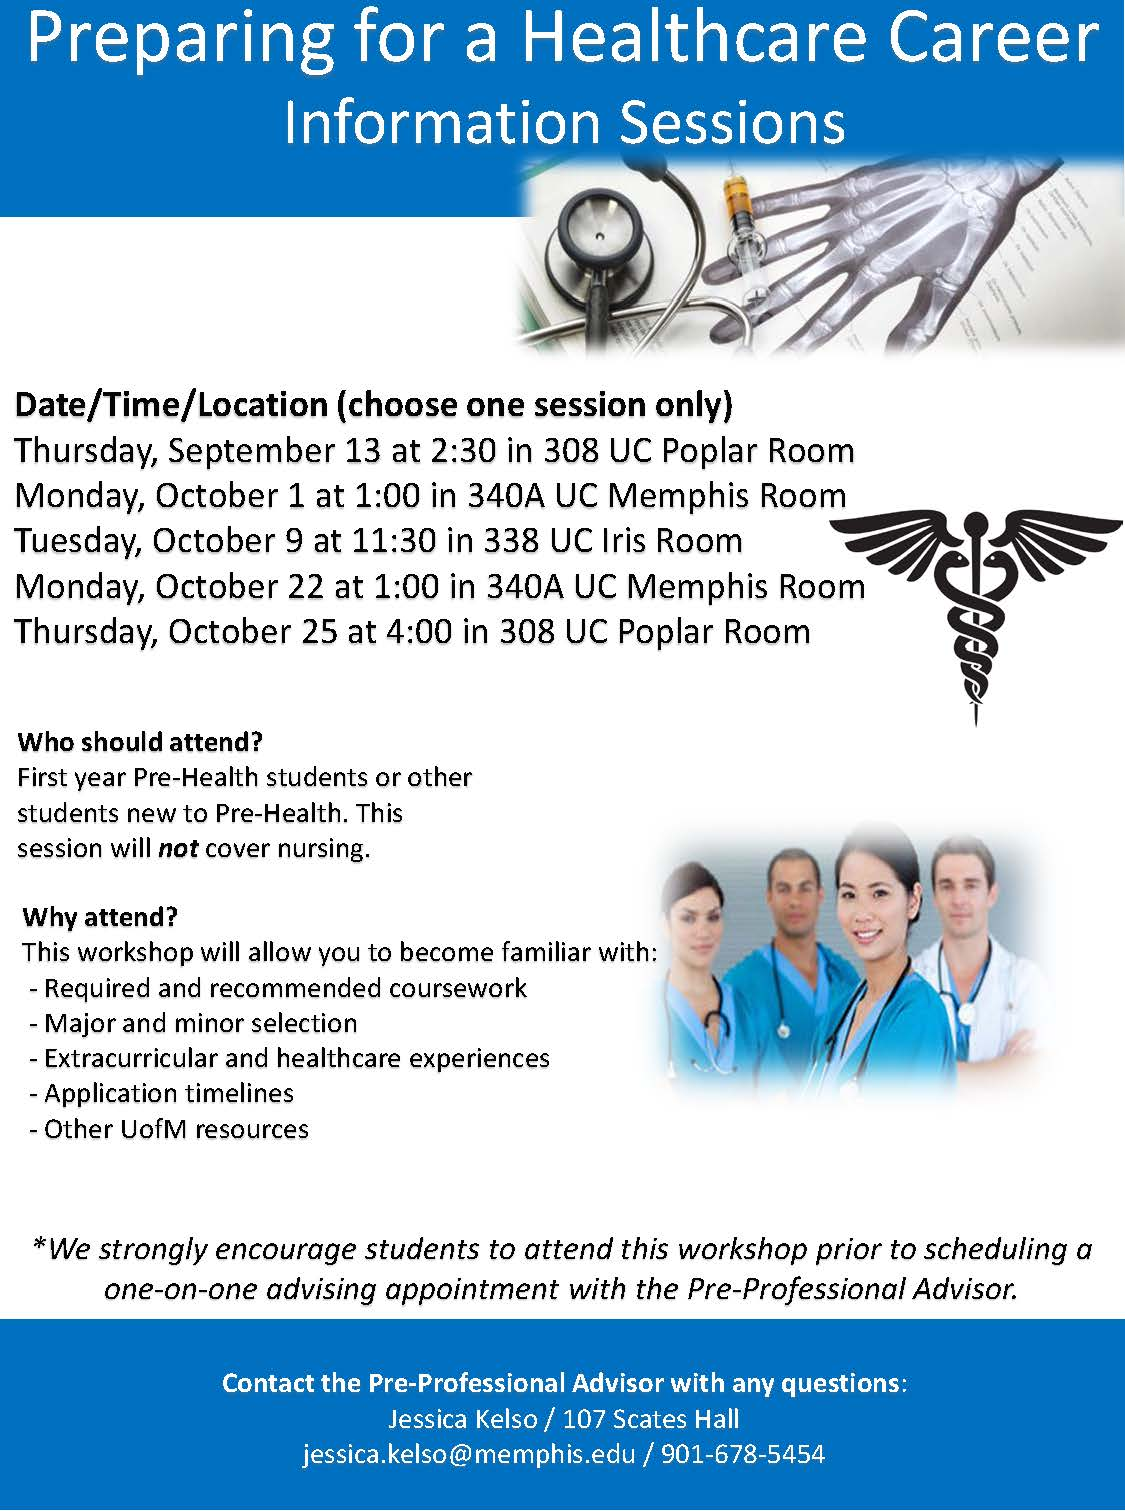 Pre-Health Information Sessions